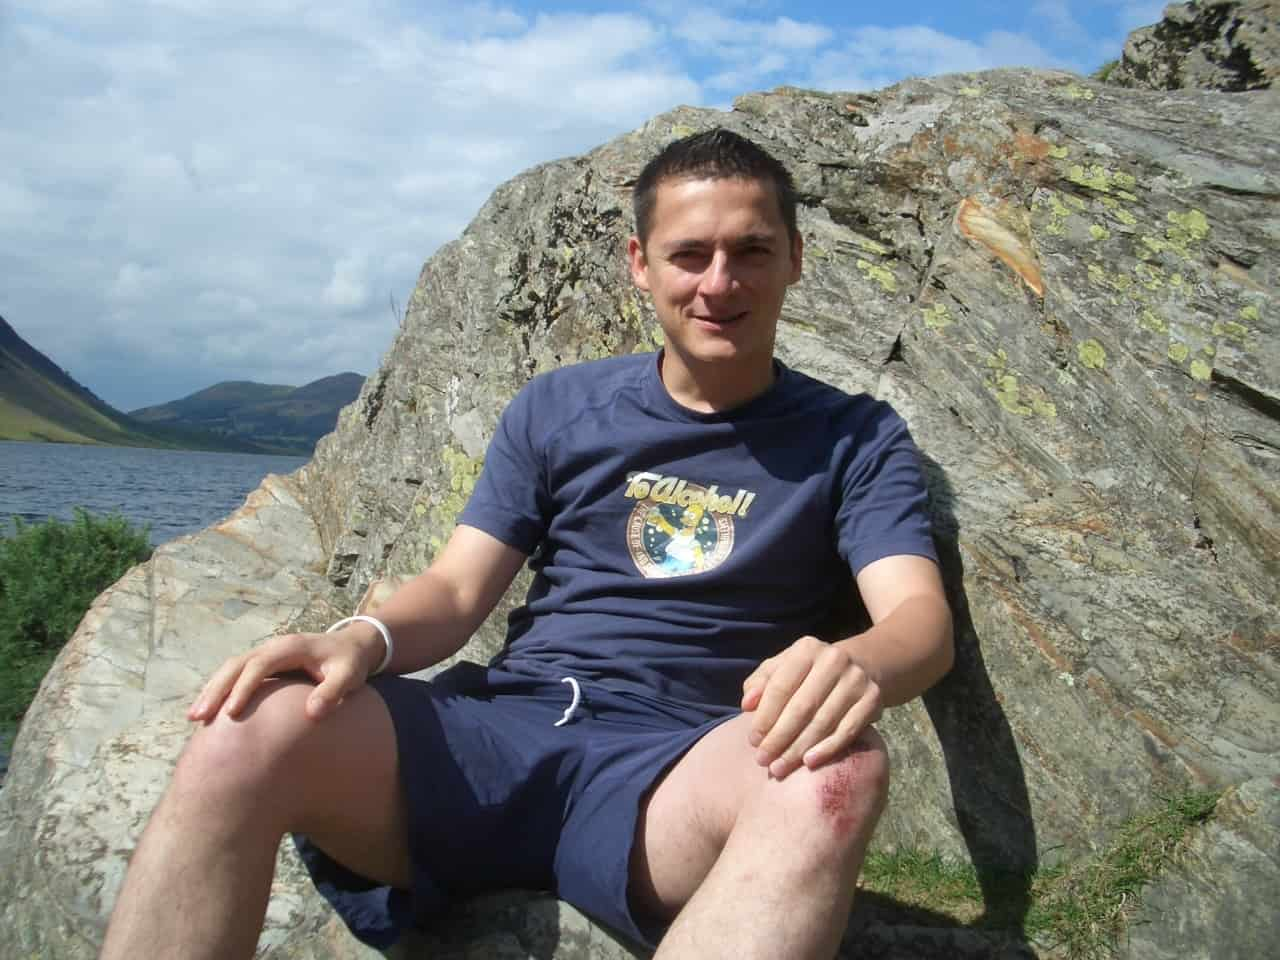 Me, enjoying a sunny day in the Lakes